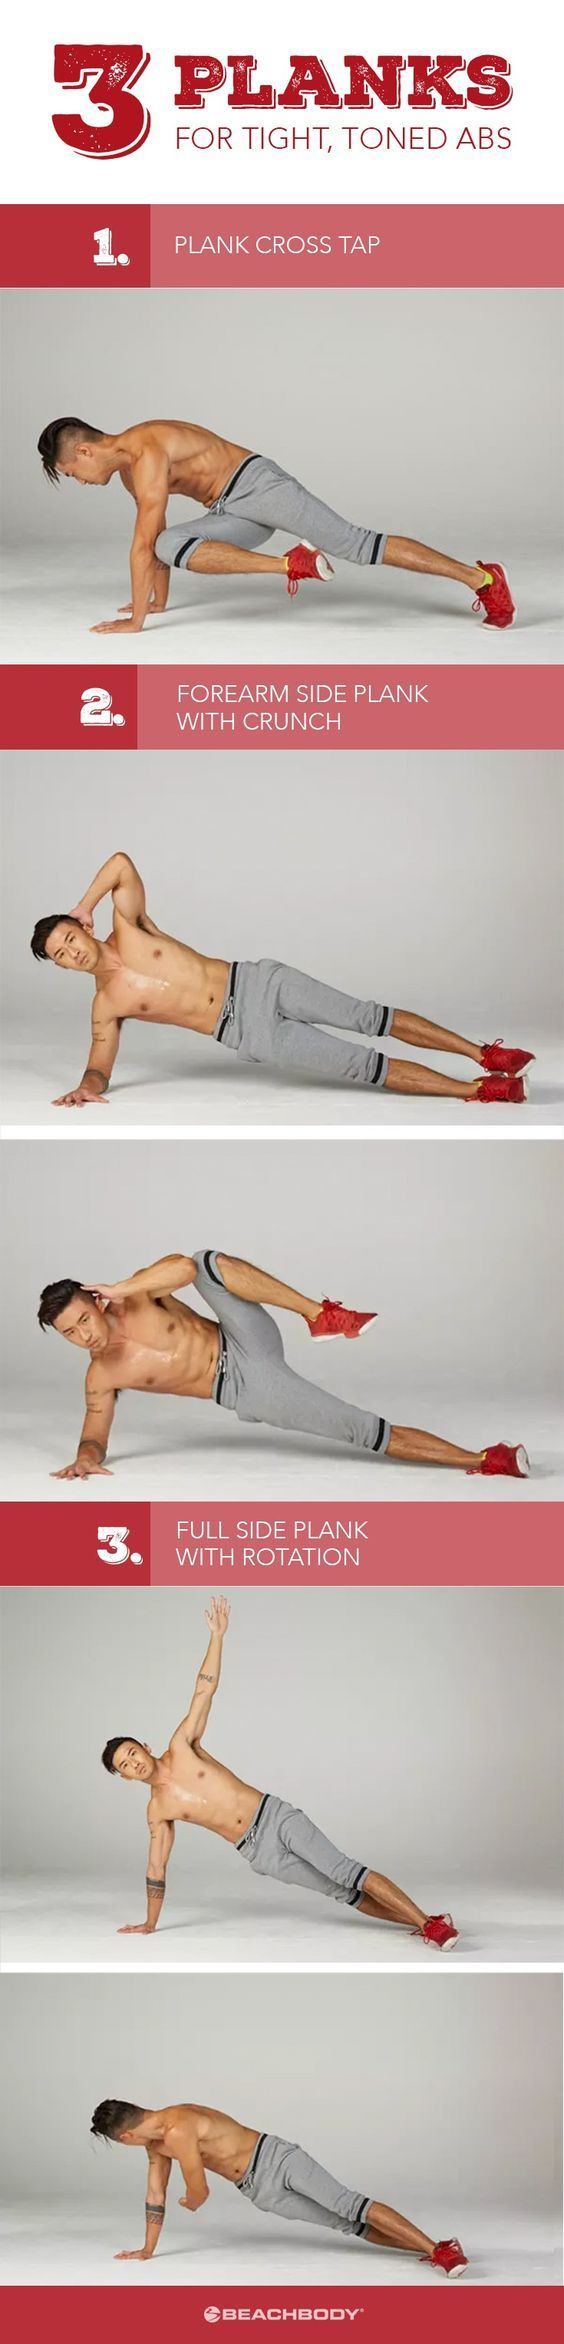 Plank exercises benefits are many. The plank is one of the best overall core conditioners around, and unlike crunches, it keeps your spine protected in a neutral position. Here are 3 ab workouts to strengthen core and lose excess belly fat. Beachbody workouts // Plank exercises // How to get toned abs // how to get a great core // easy core workouts // plank workouts